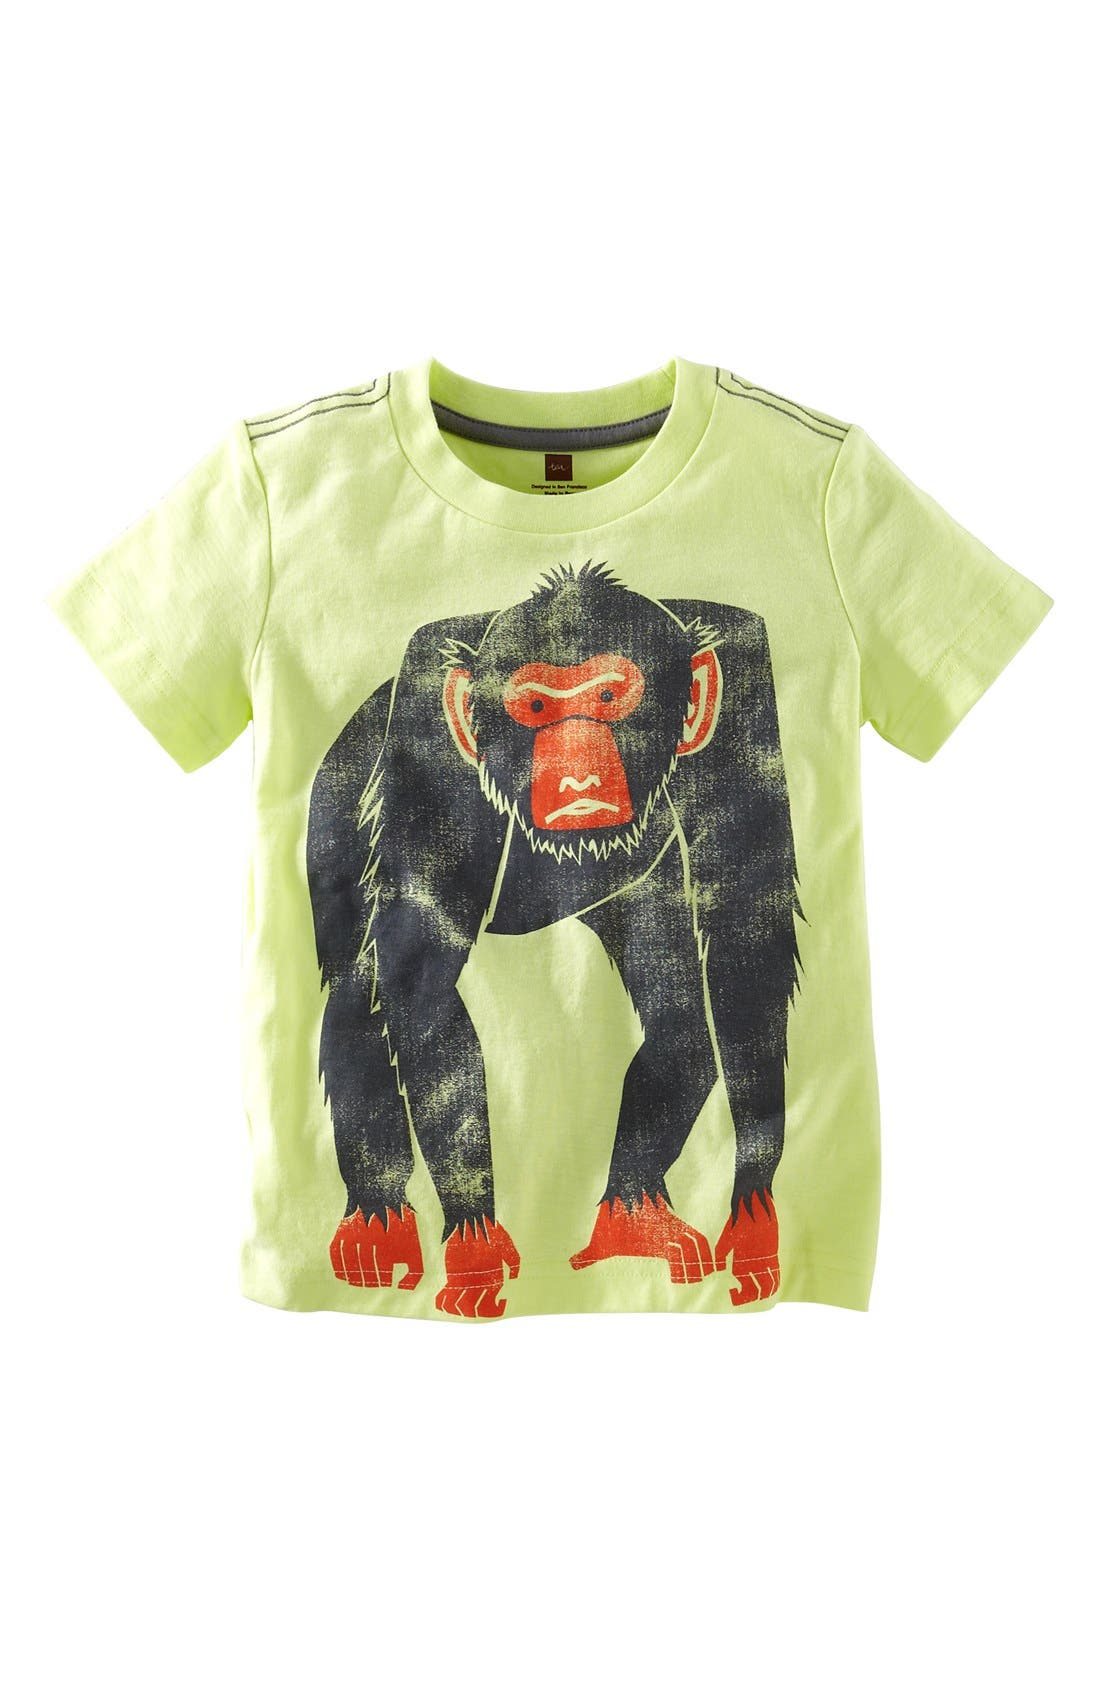 Main Image - Tea Collection 'Barbary Ape' T-Shirt (Toddler Boys)